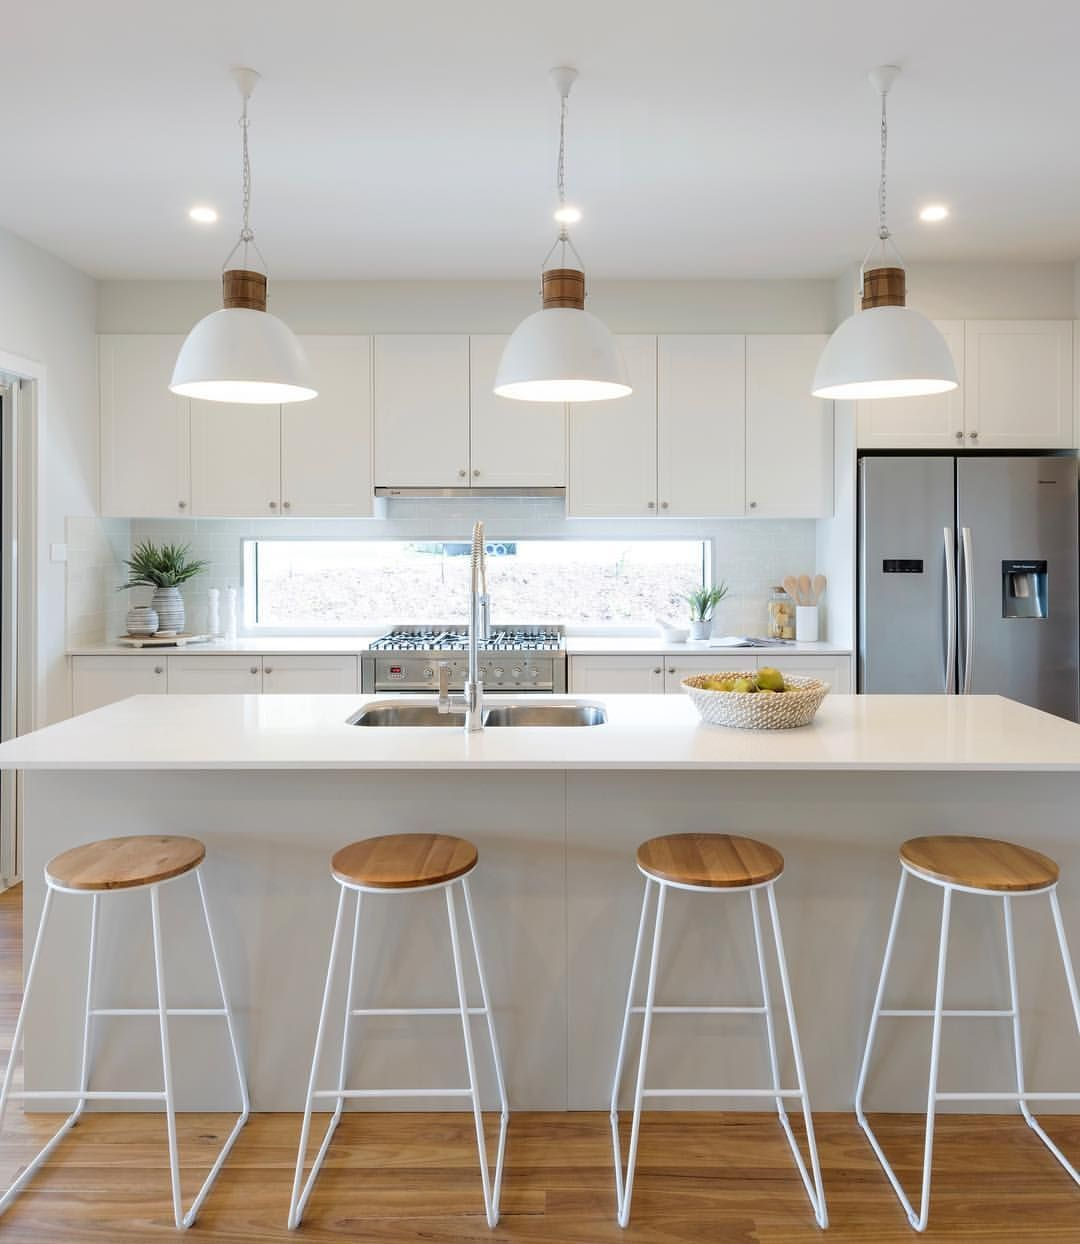 How Much Is My House Worth With Images Classy Kitchen Home